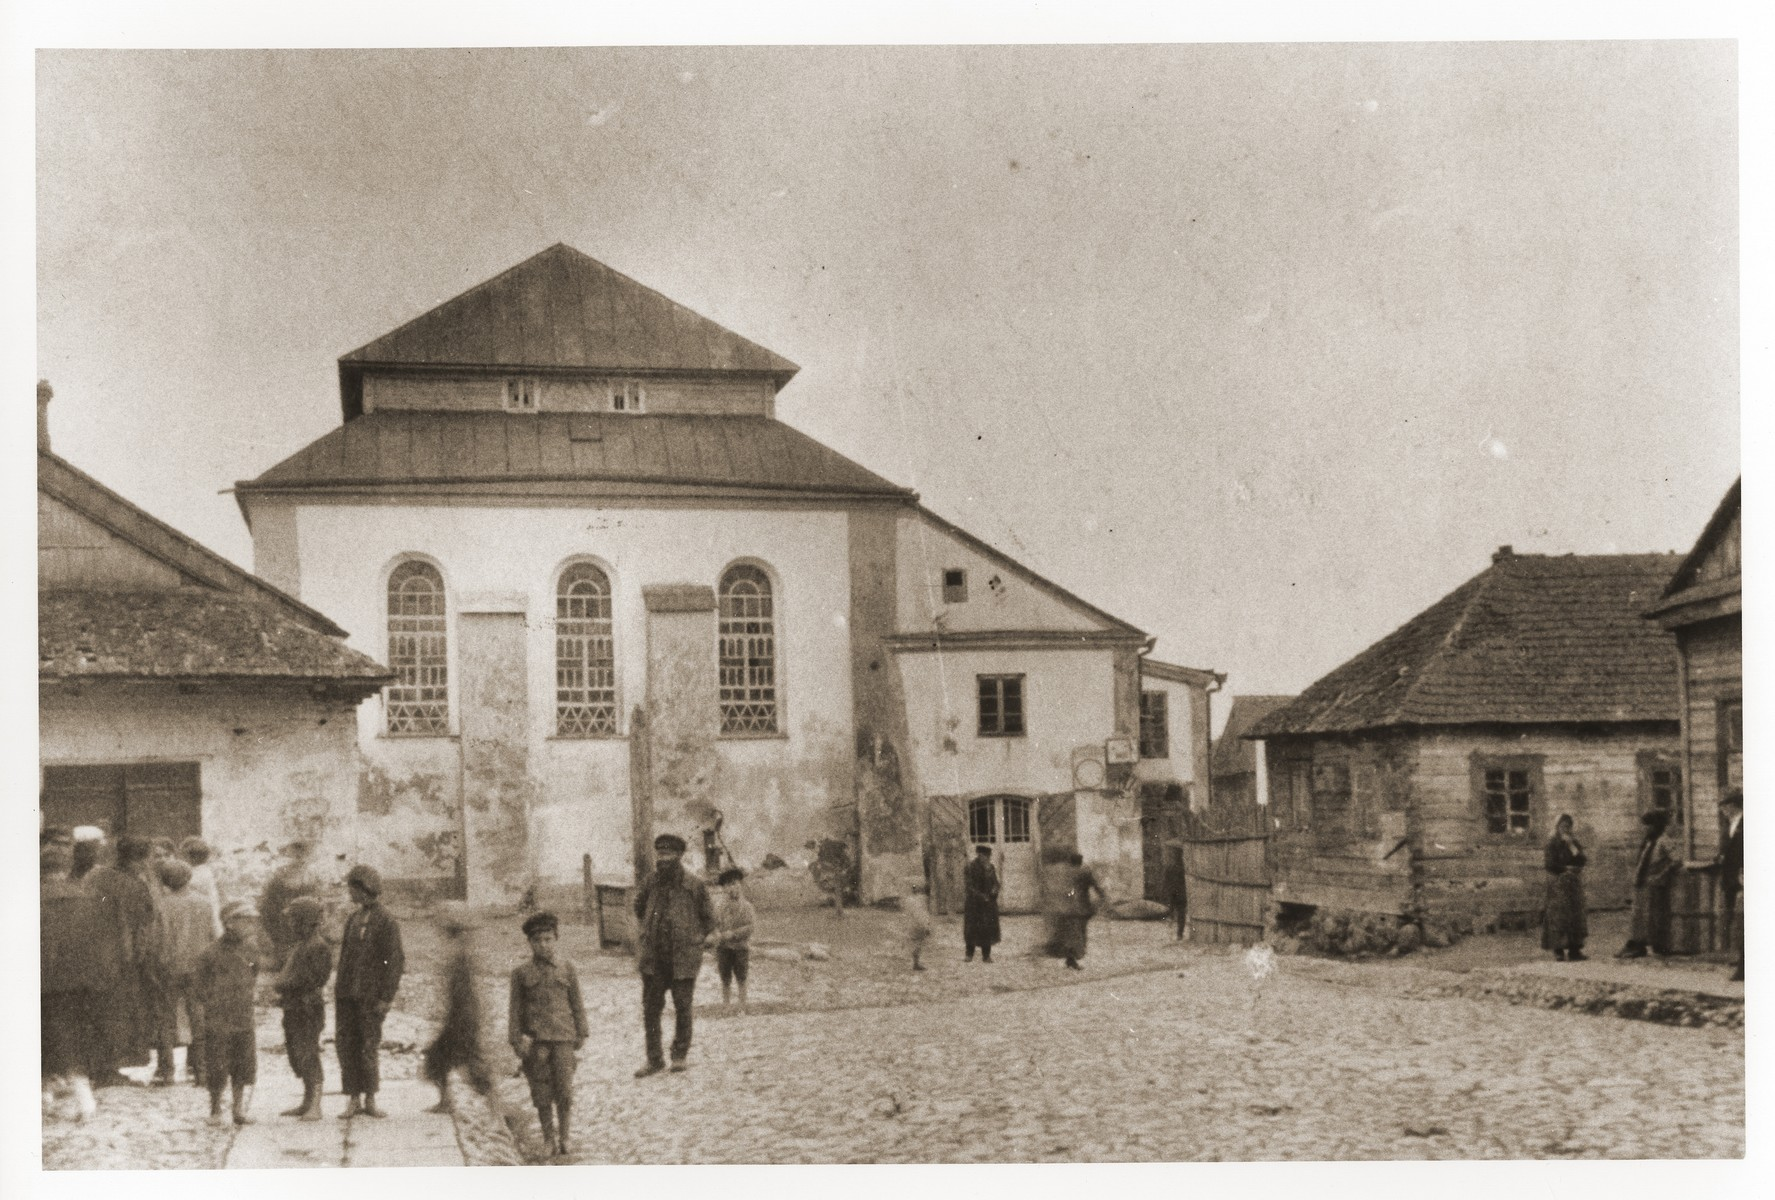 Children and adults congregate outside the Nieswiez synagogue.